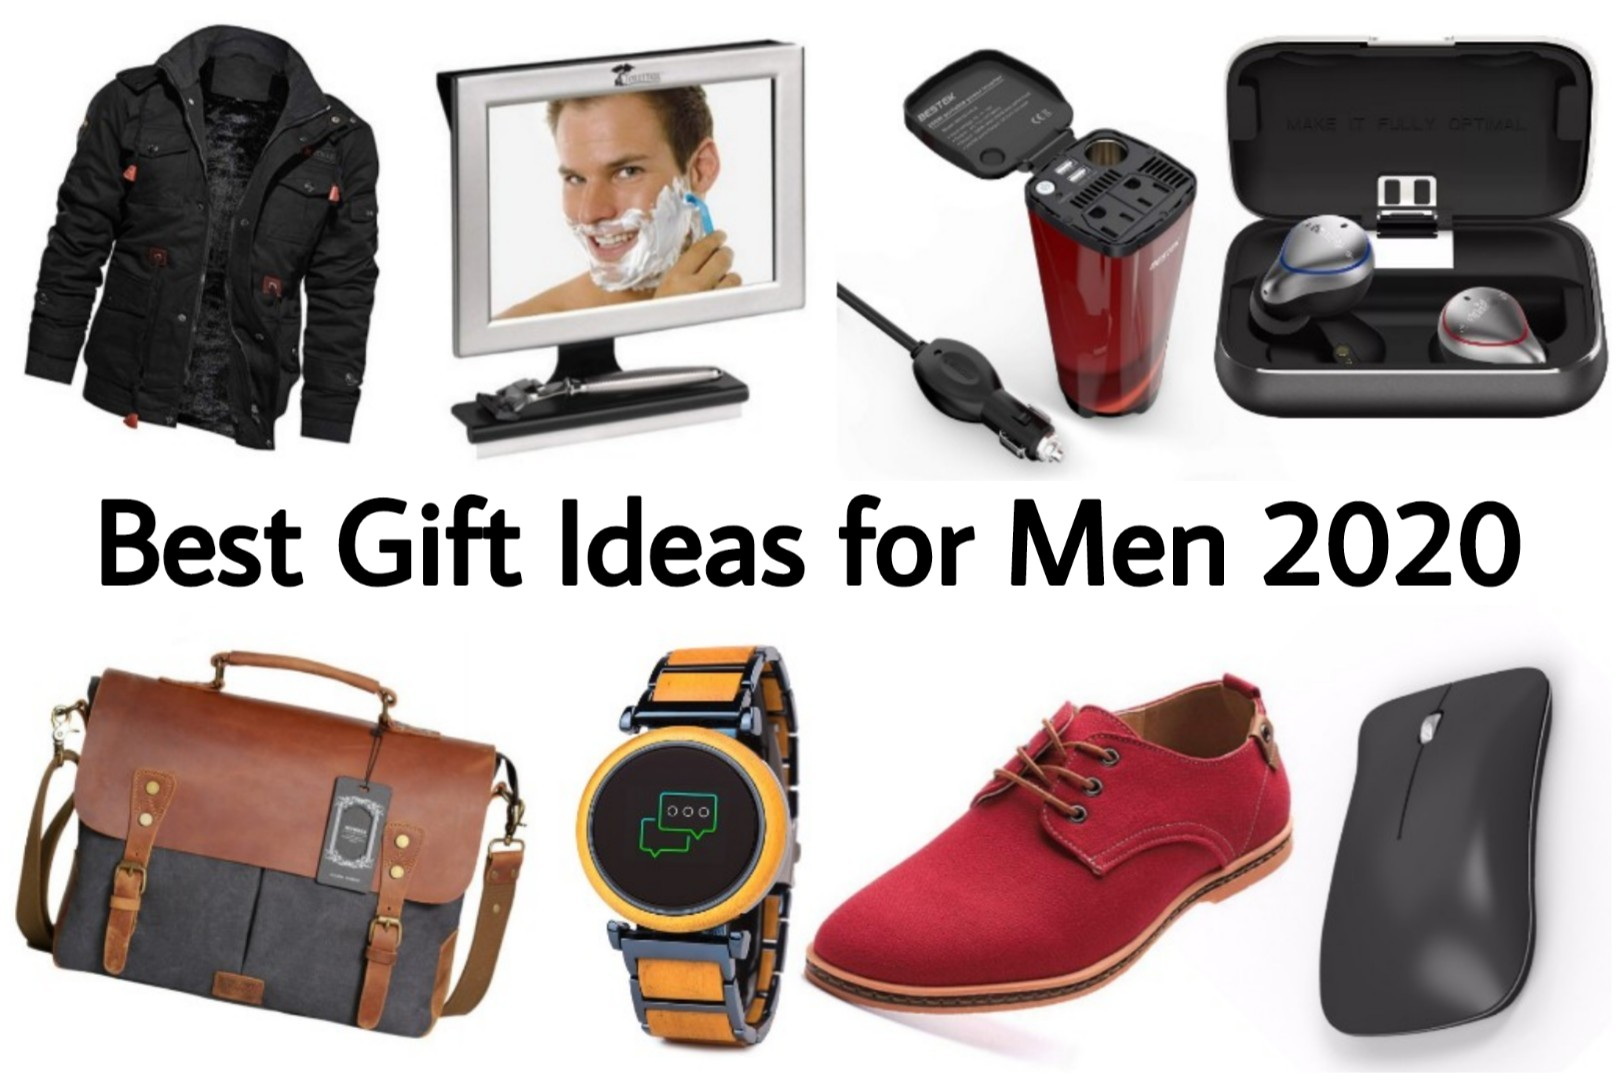 Best Christmas Gifts for Men 2020 | Birthday Gift Ideas ...